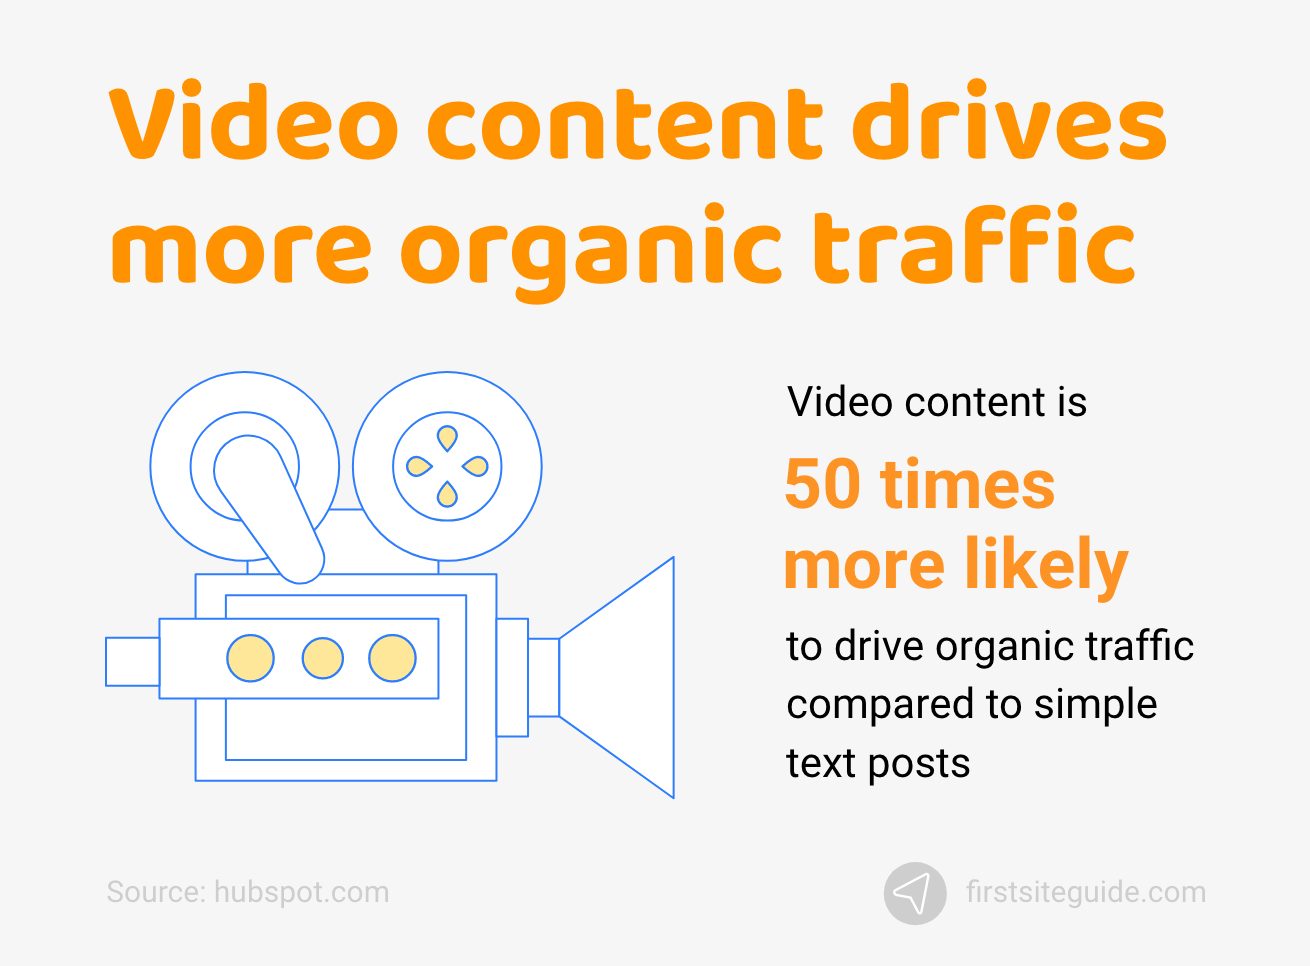 Video content drives more organic traffic